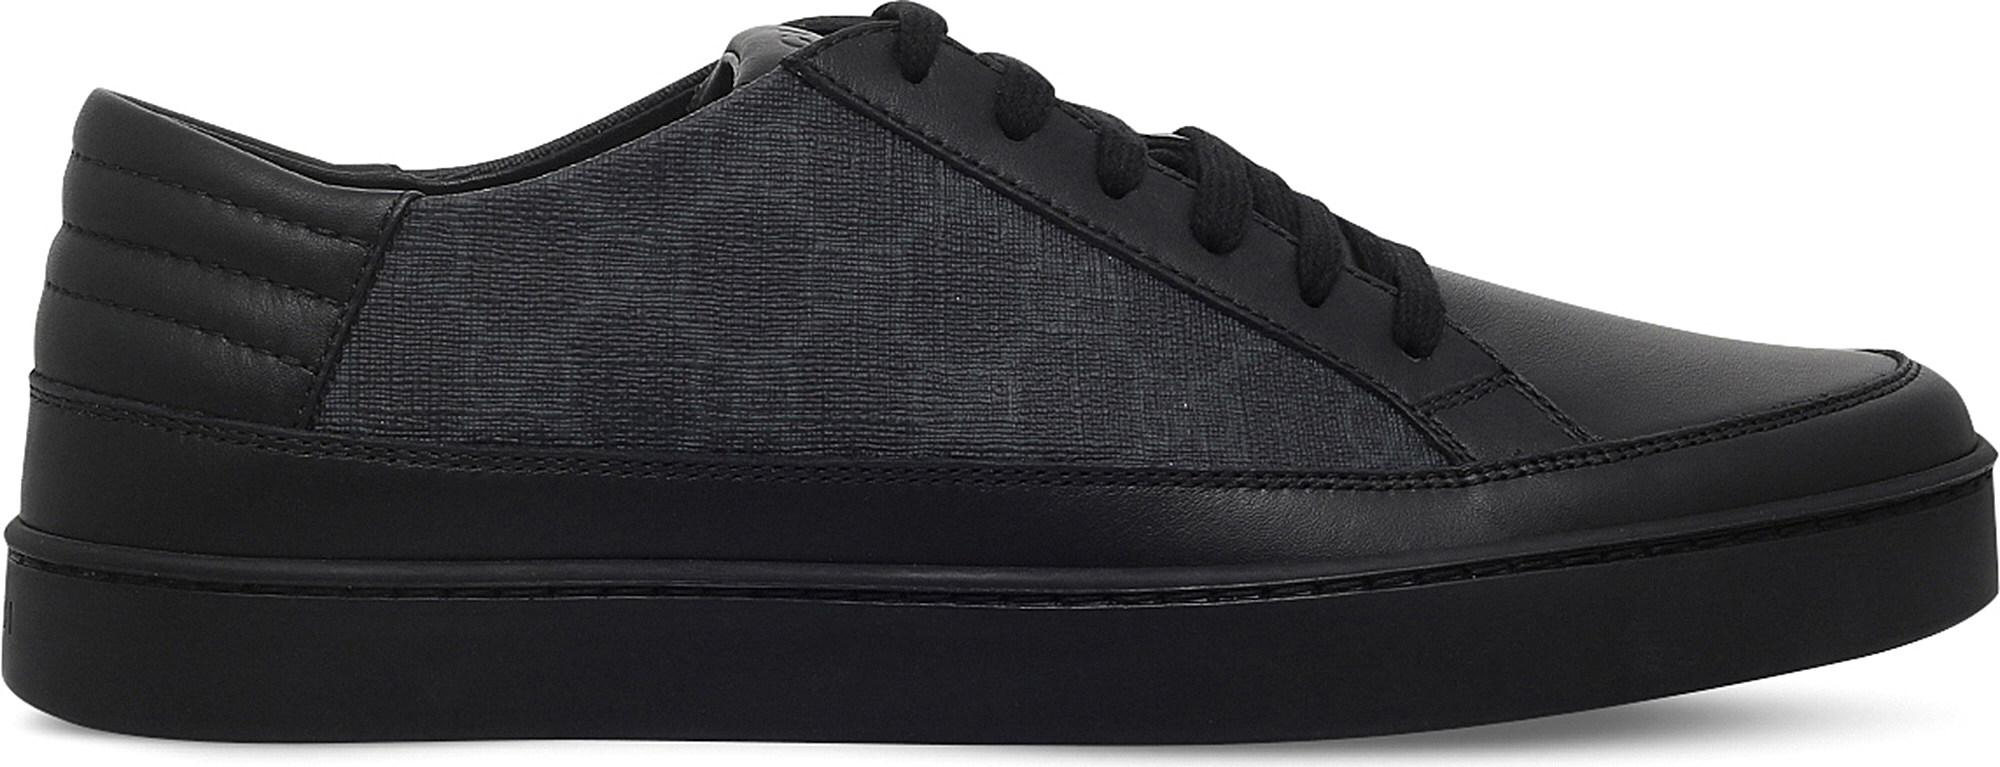 c4ea08fb8f0 Gucci Common GG Low-top Trainers in Gray for Men - Lyst